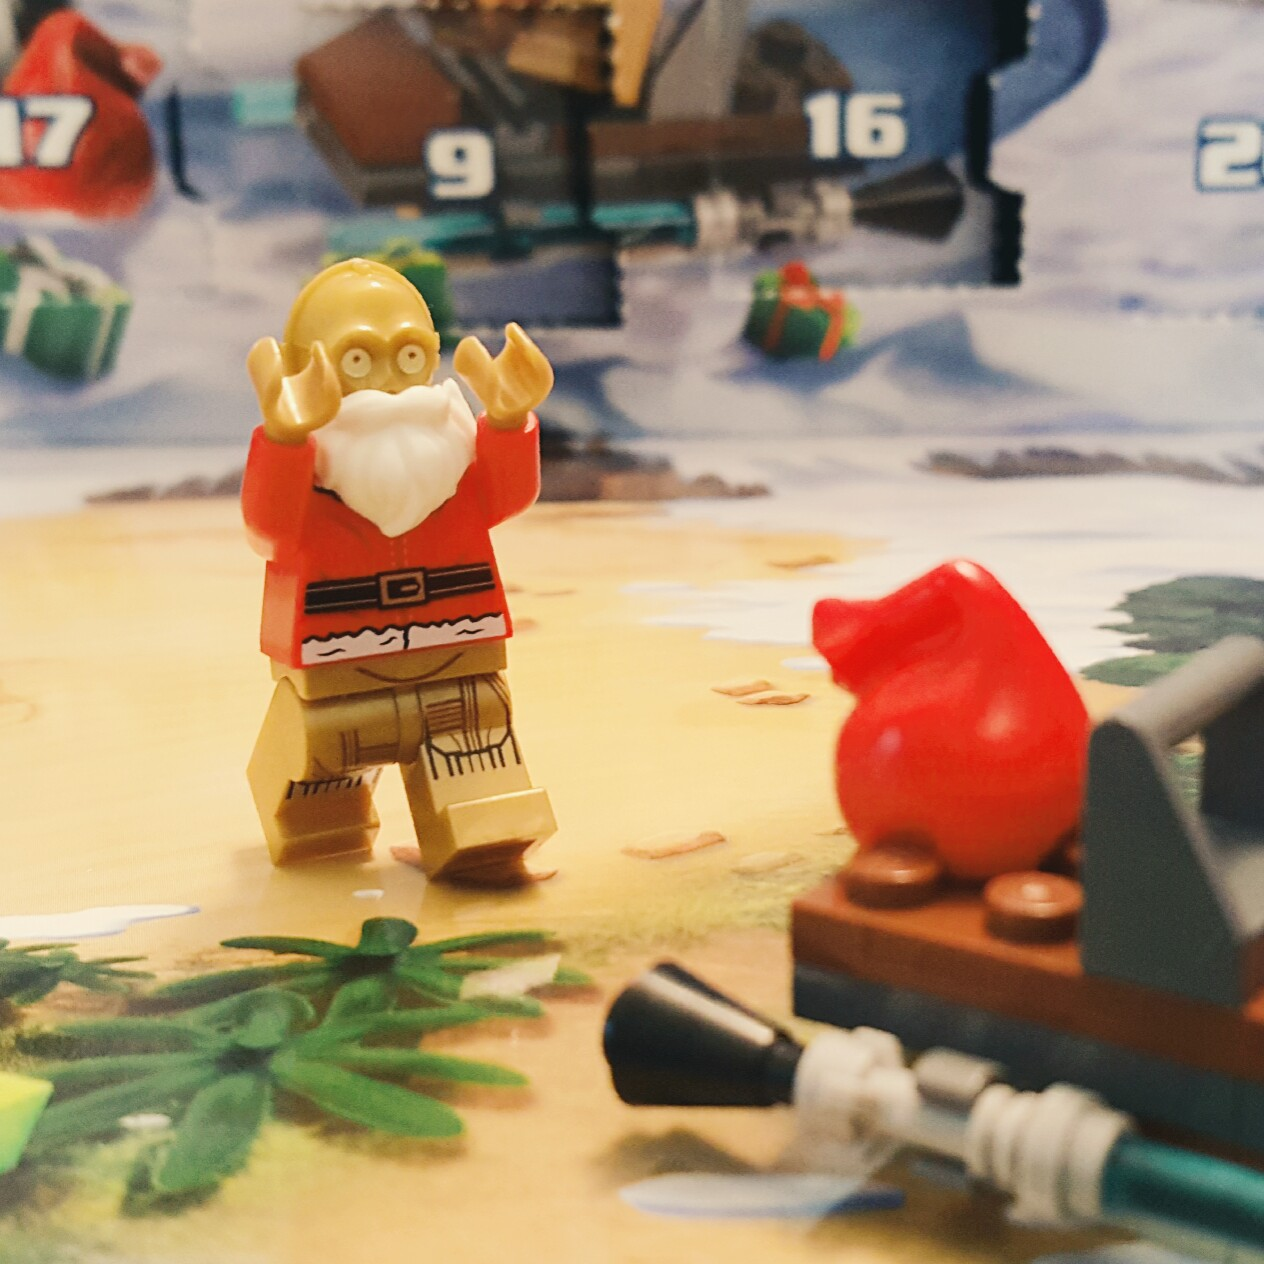 Day 24 C3-P0 Santa Clause from LEGO Star Wars Advent Calendar